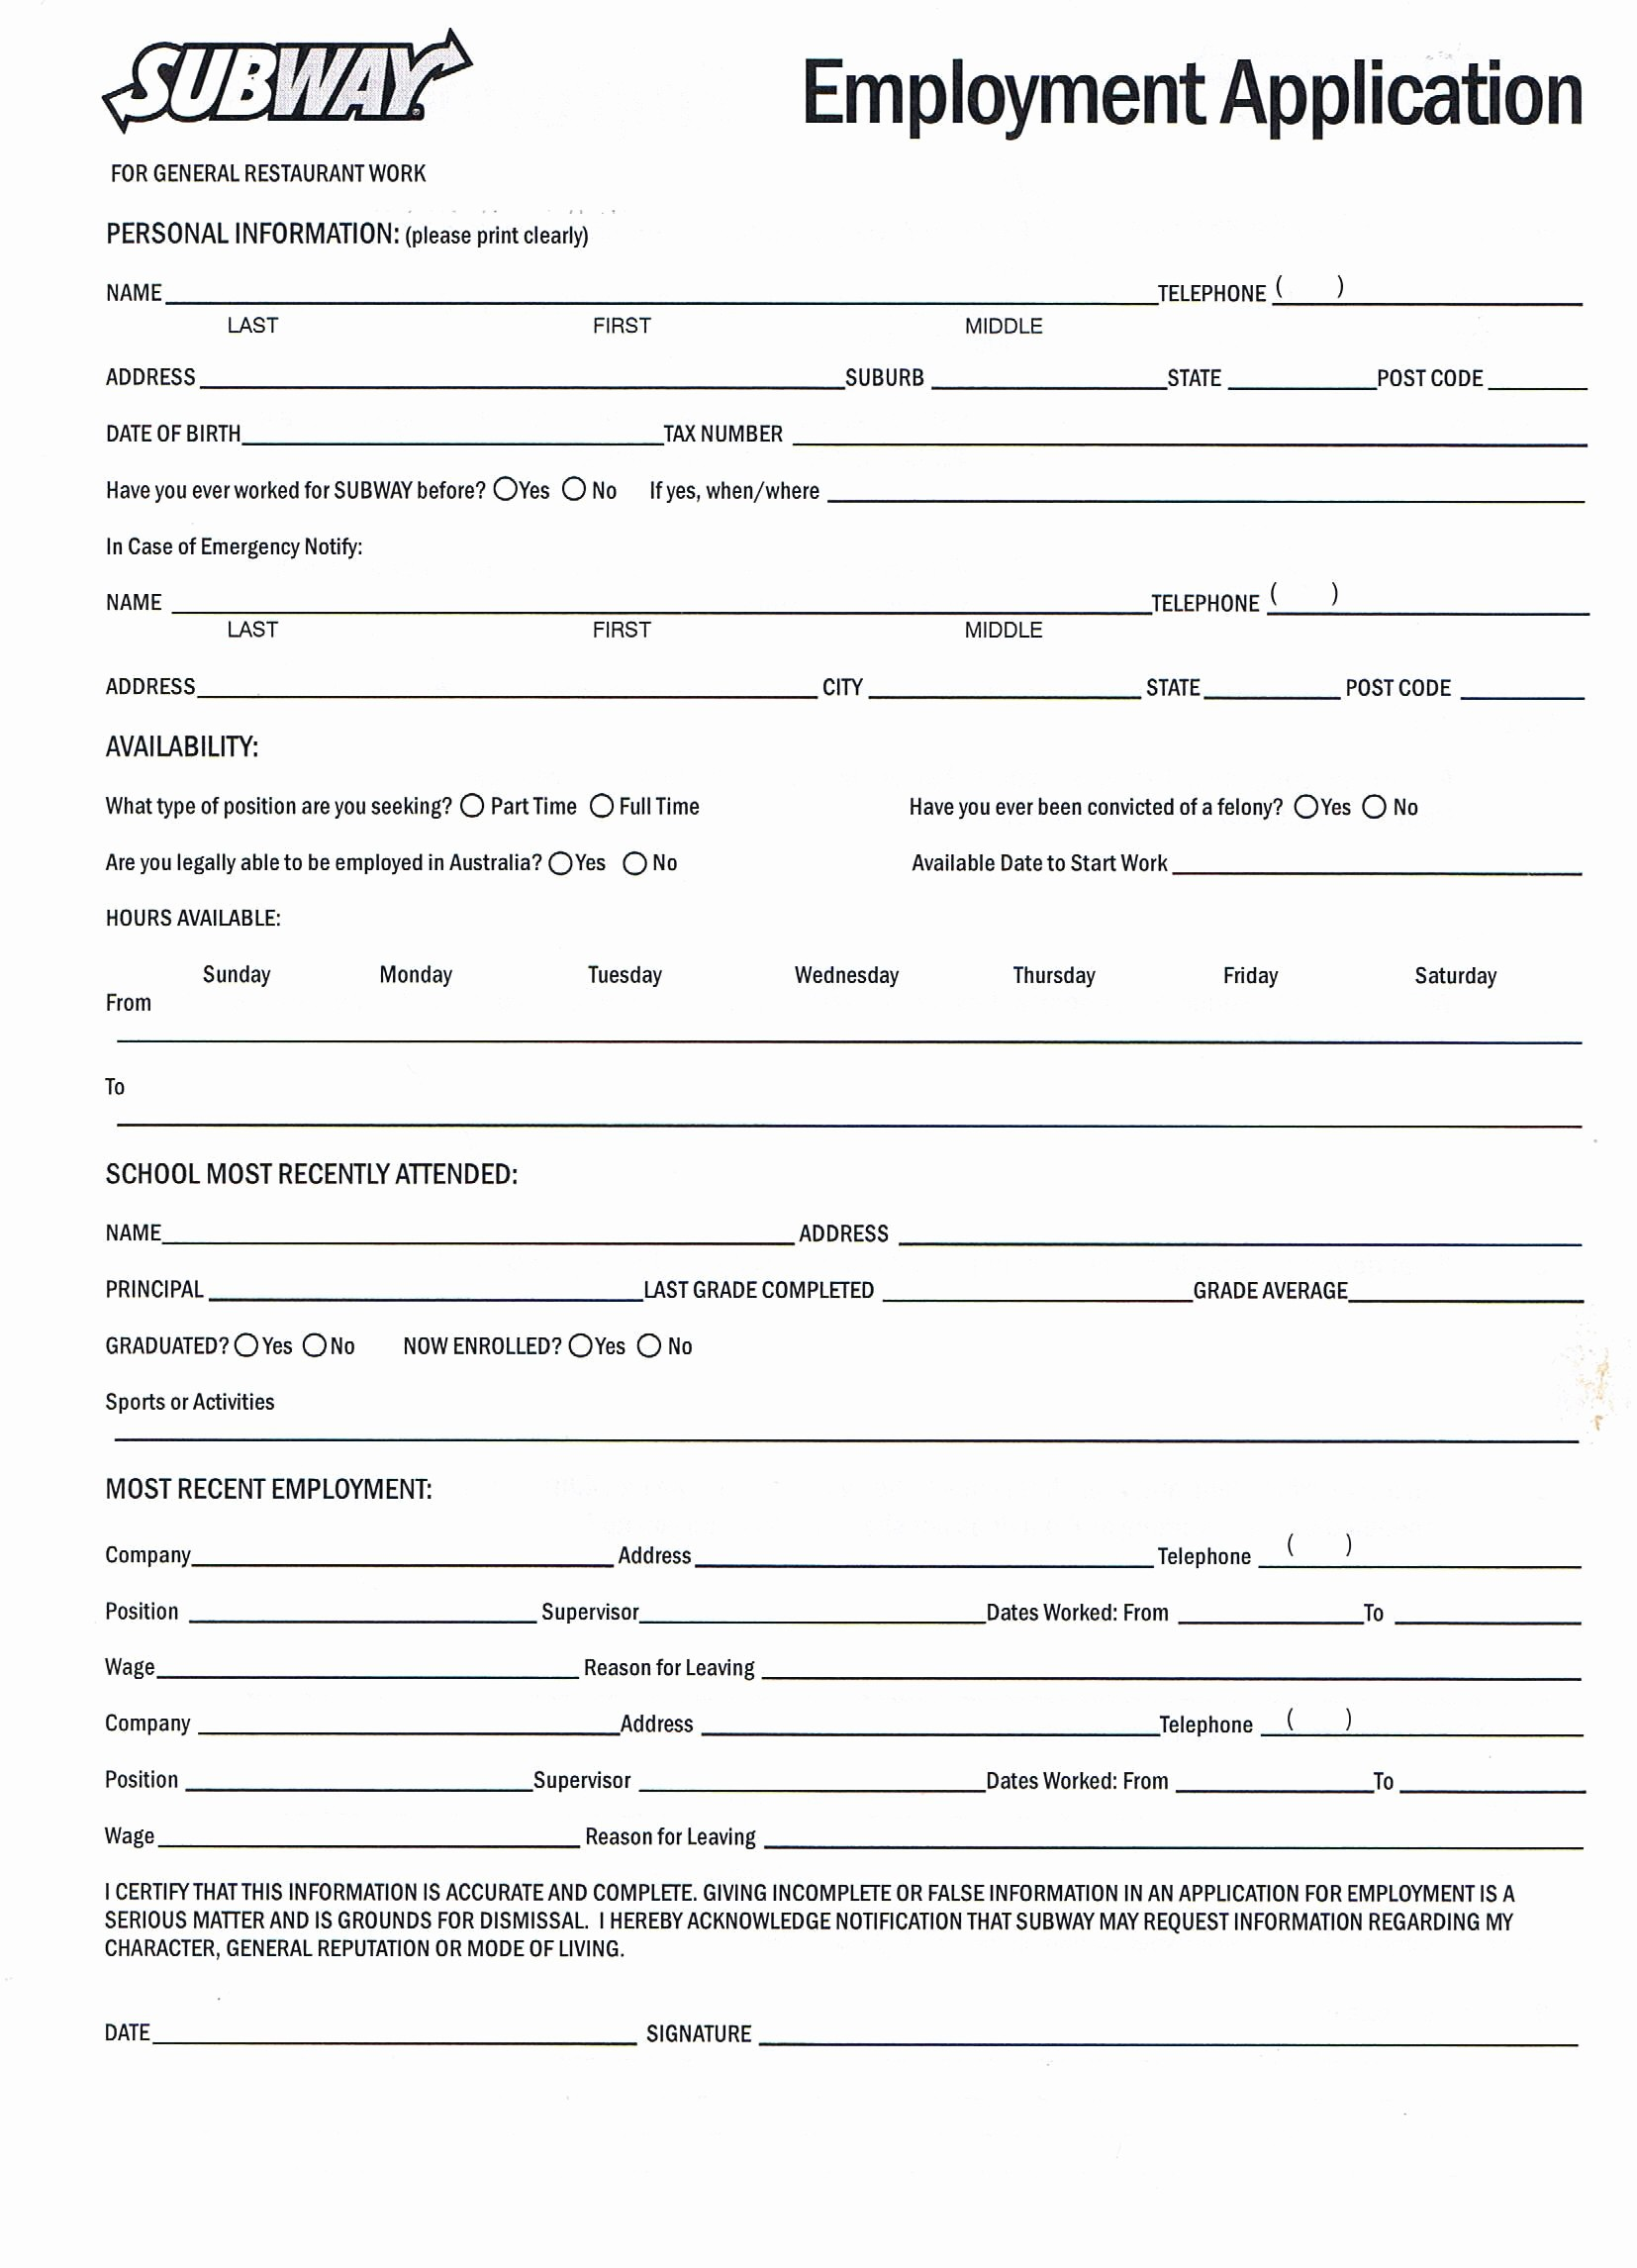 Application for Employment form Free Best Of Printable Employment Application for Subway